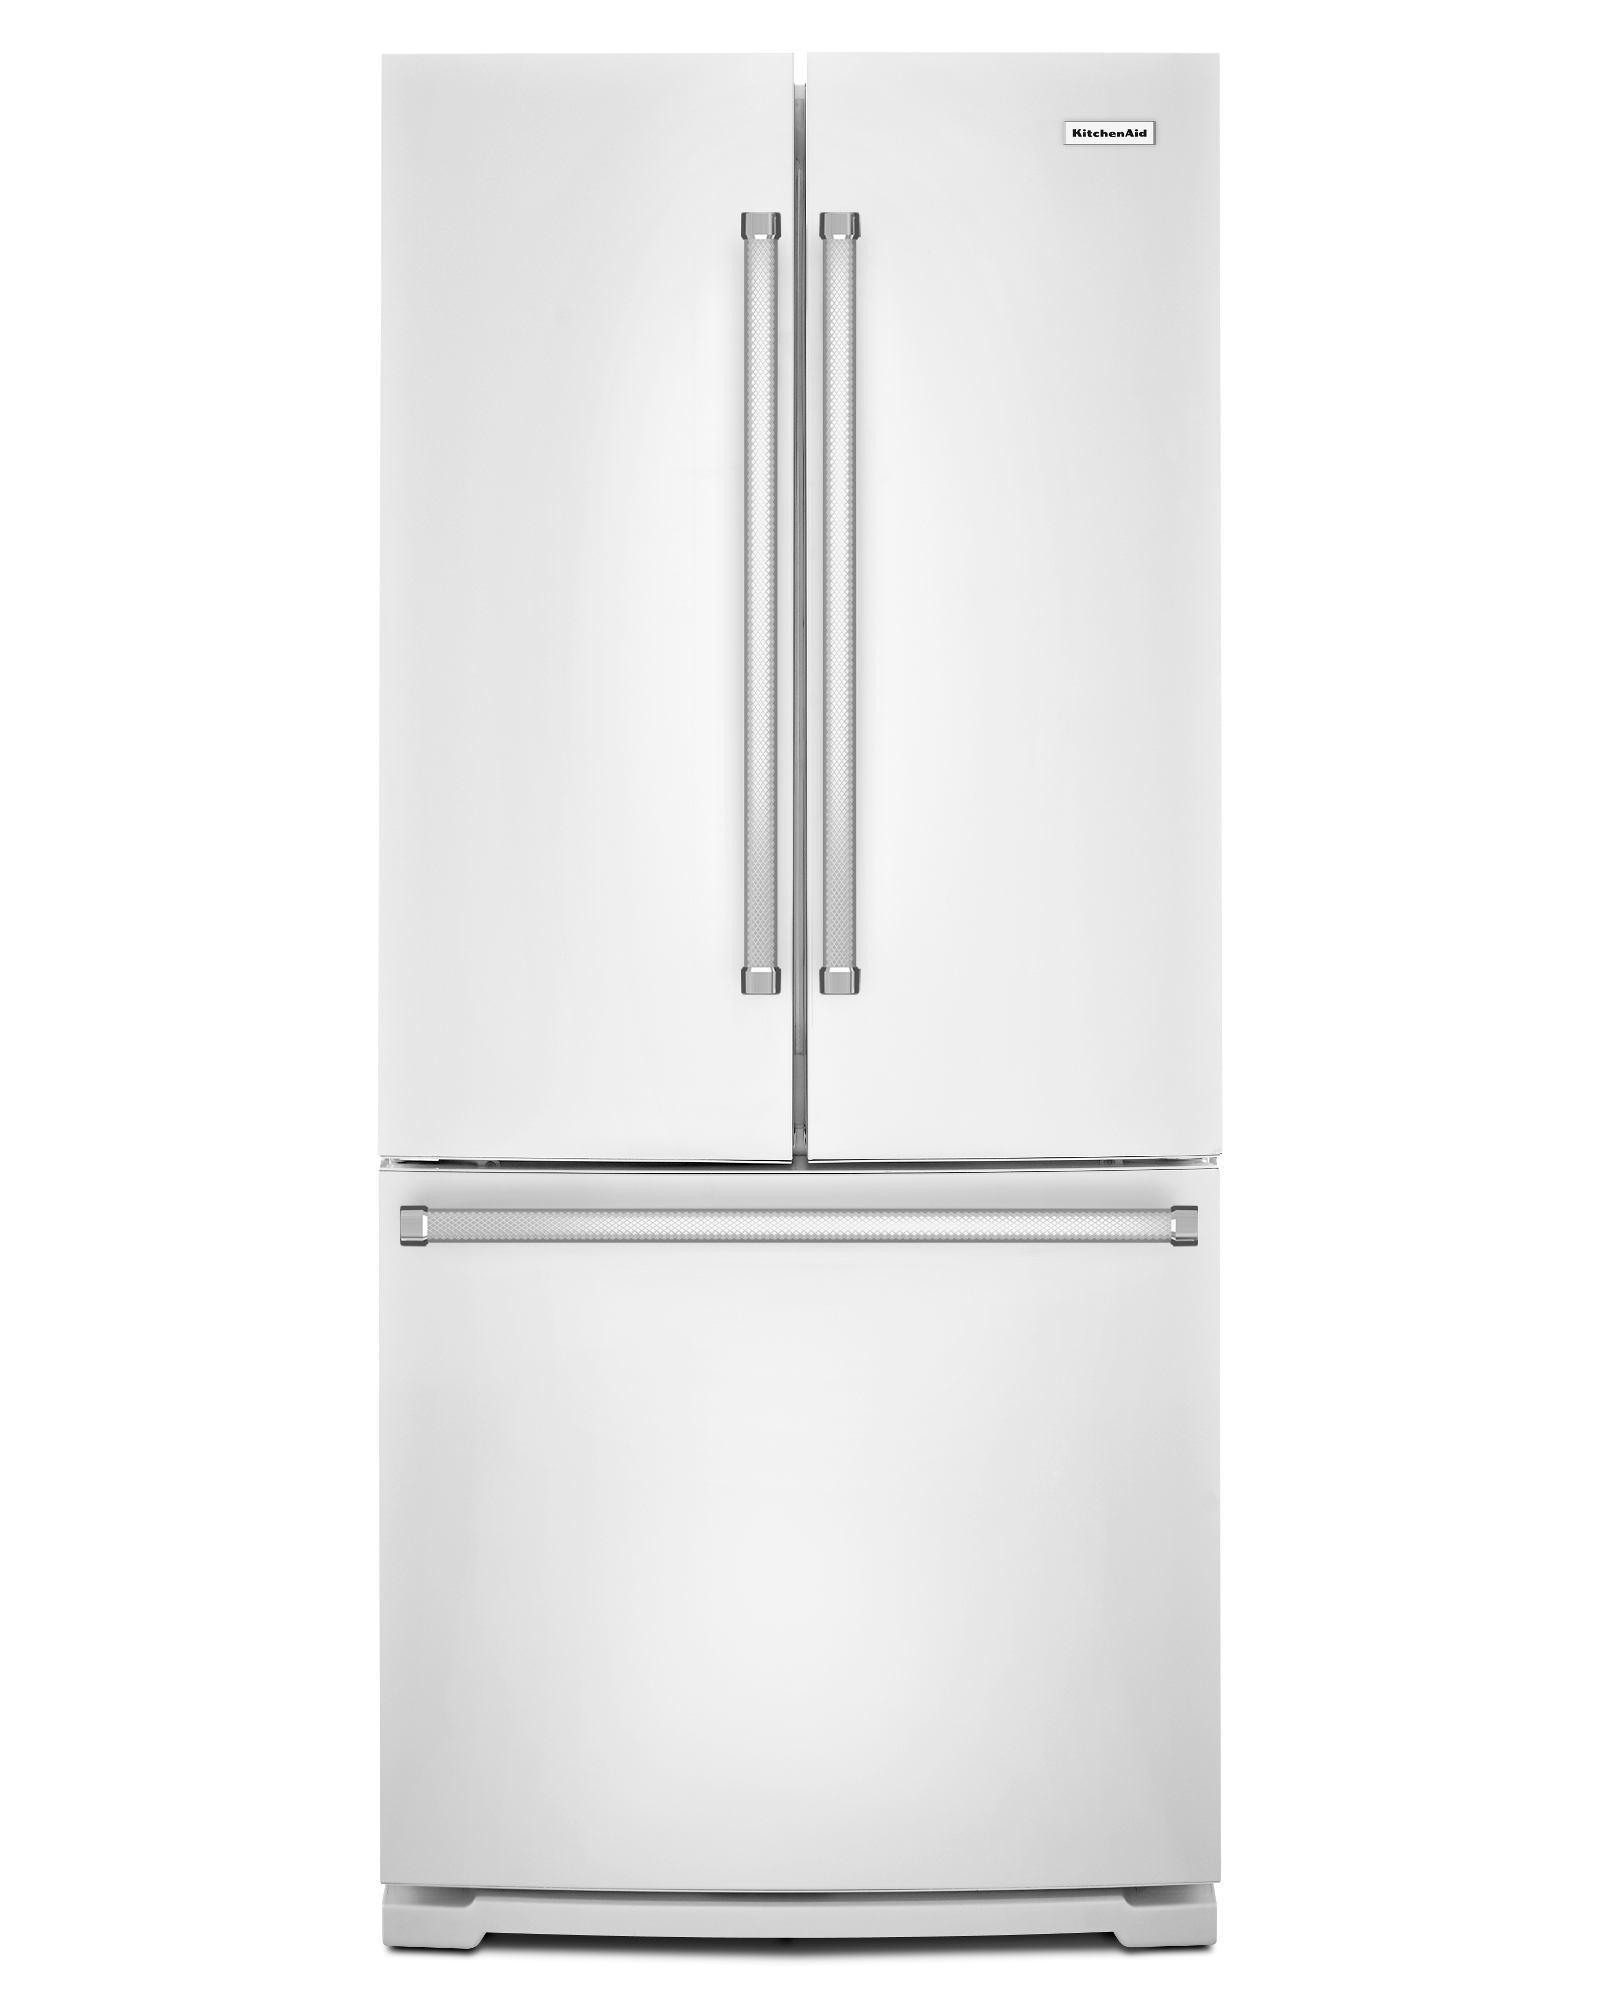 KRFF300EWH-20-cu-ft-French-Door-Refrigerator-White